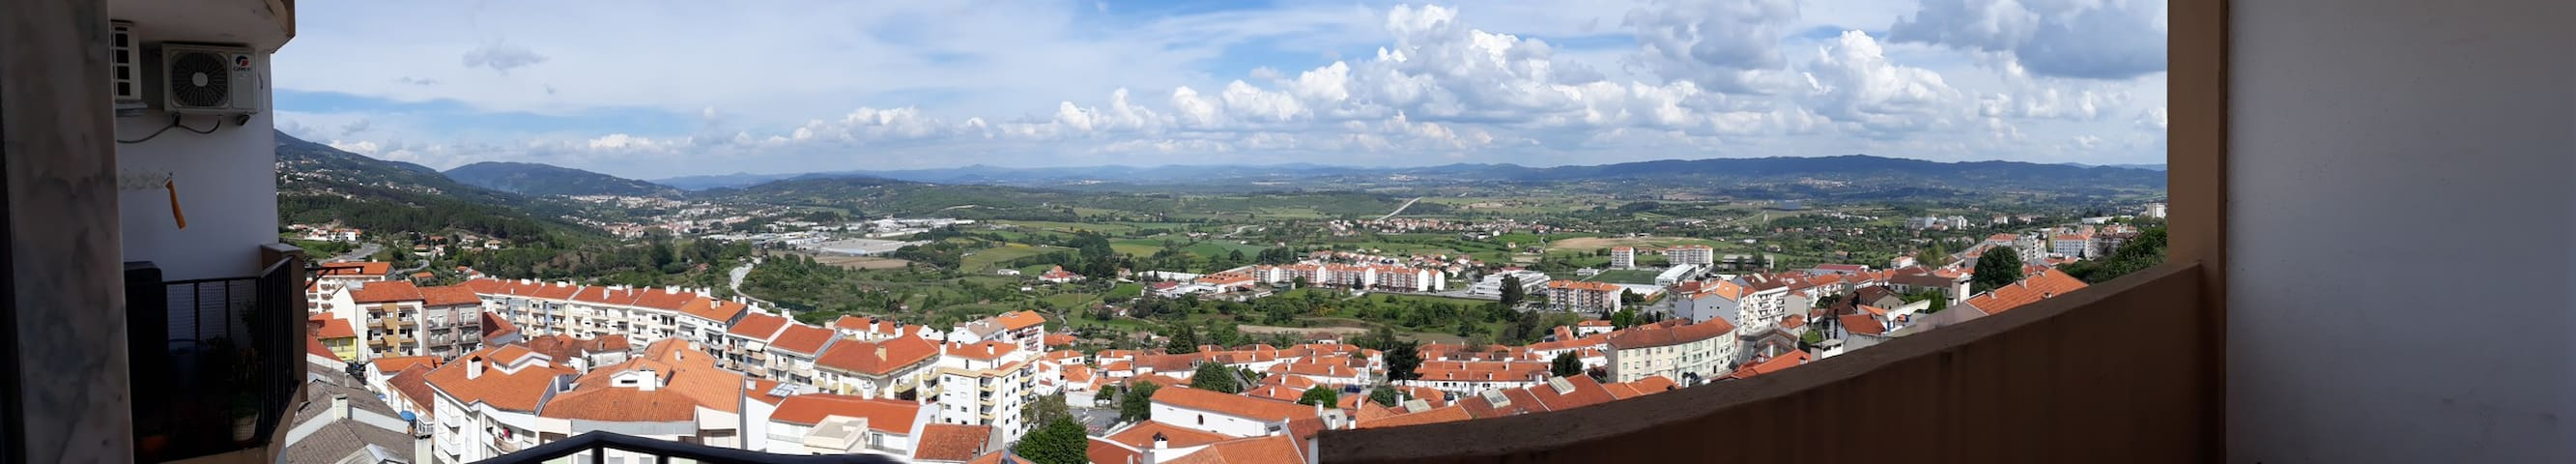 Apartment with view, balcony in centre of covilha